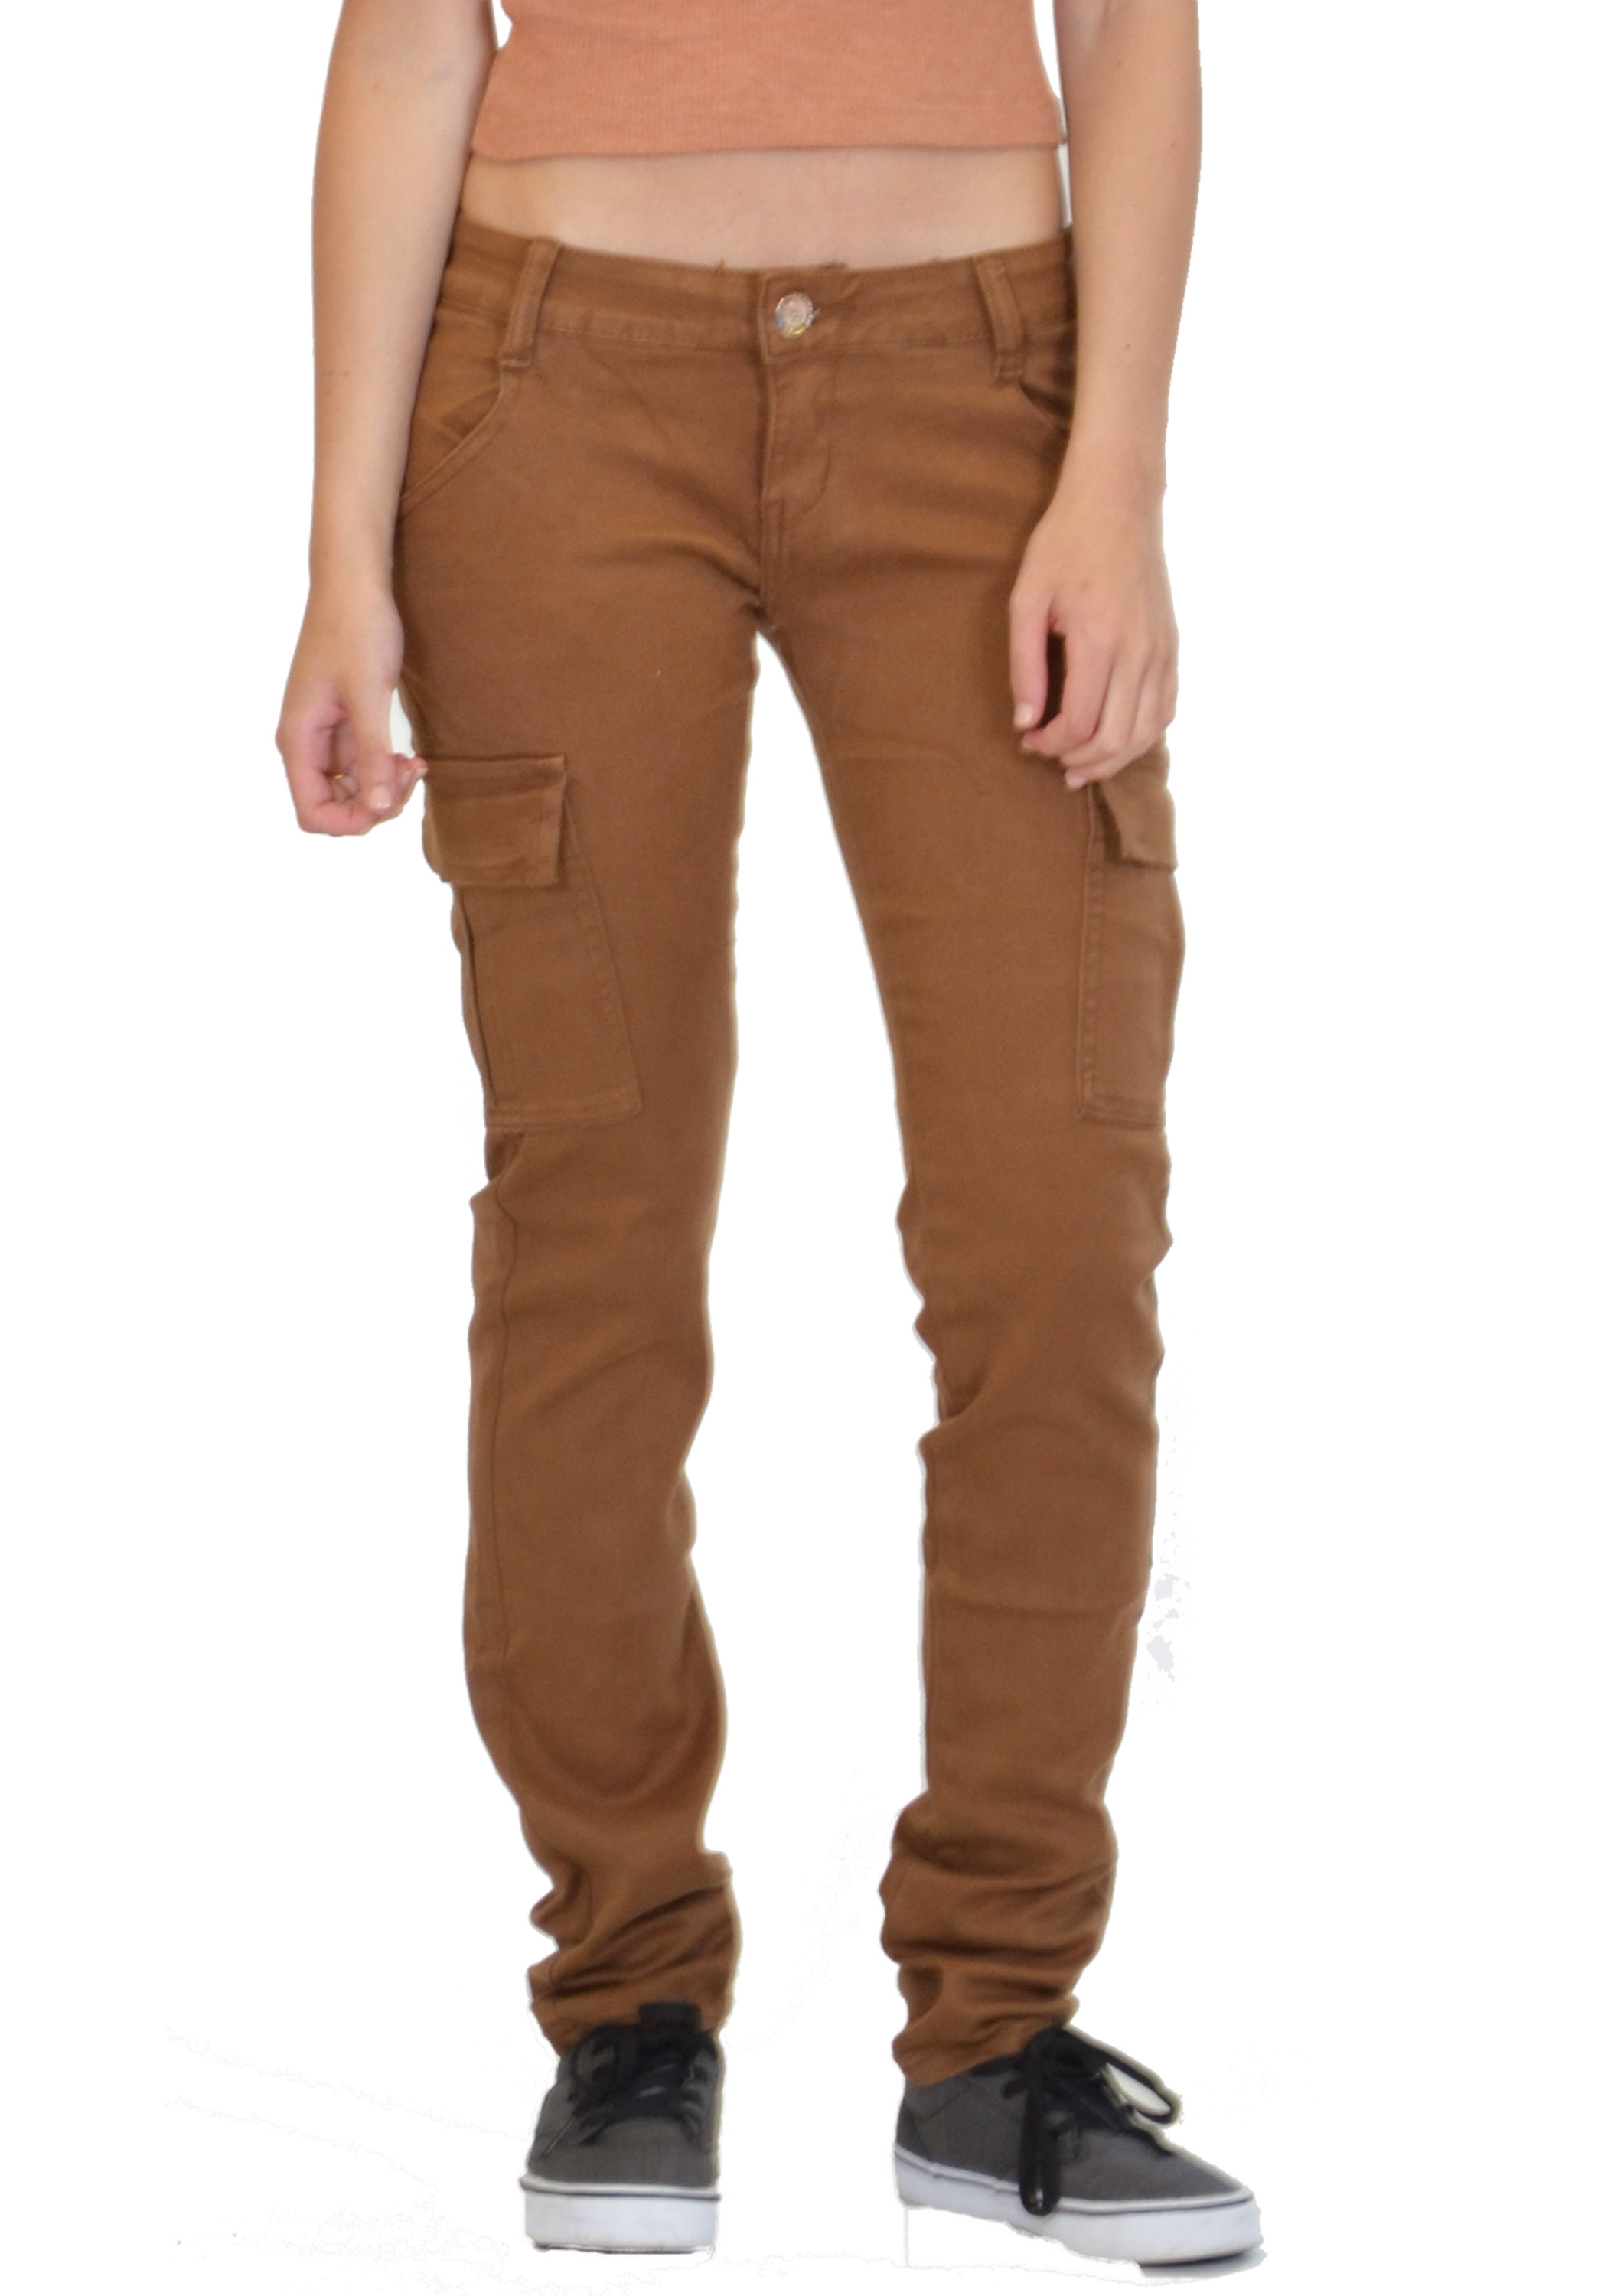 Popular New Ladies Womens Slim Skinny Fitted Stretch Combat Jeans Cargo Pants